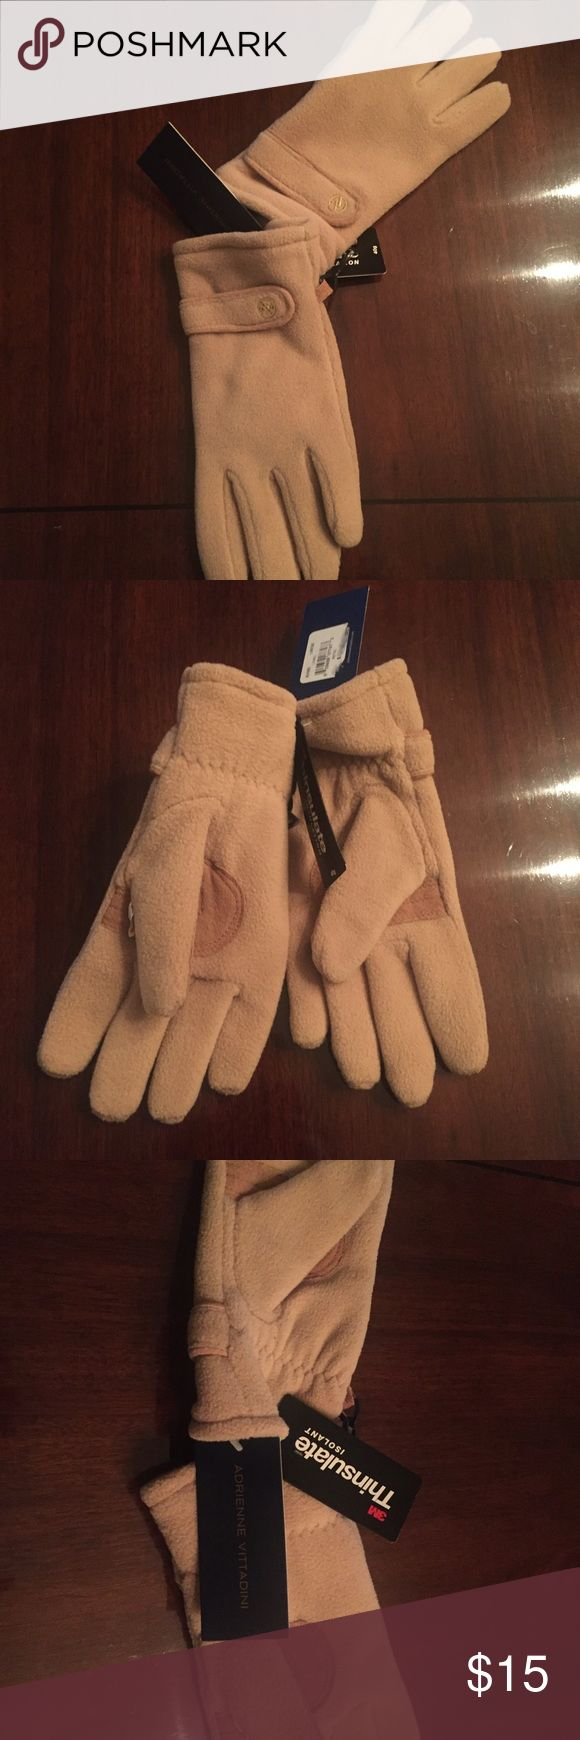 "NWT Adrienne Vittadini Tan ""Thinsulate"" Gloves Tan Adrienne Vittadini ""Thinsulate"" Gloves. Very warm, fleece lined. Never worn. Size Large. Adrienne Vittadini Accessories Gloves & Mittens"